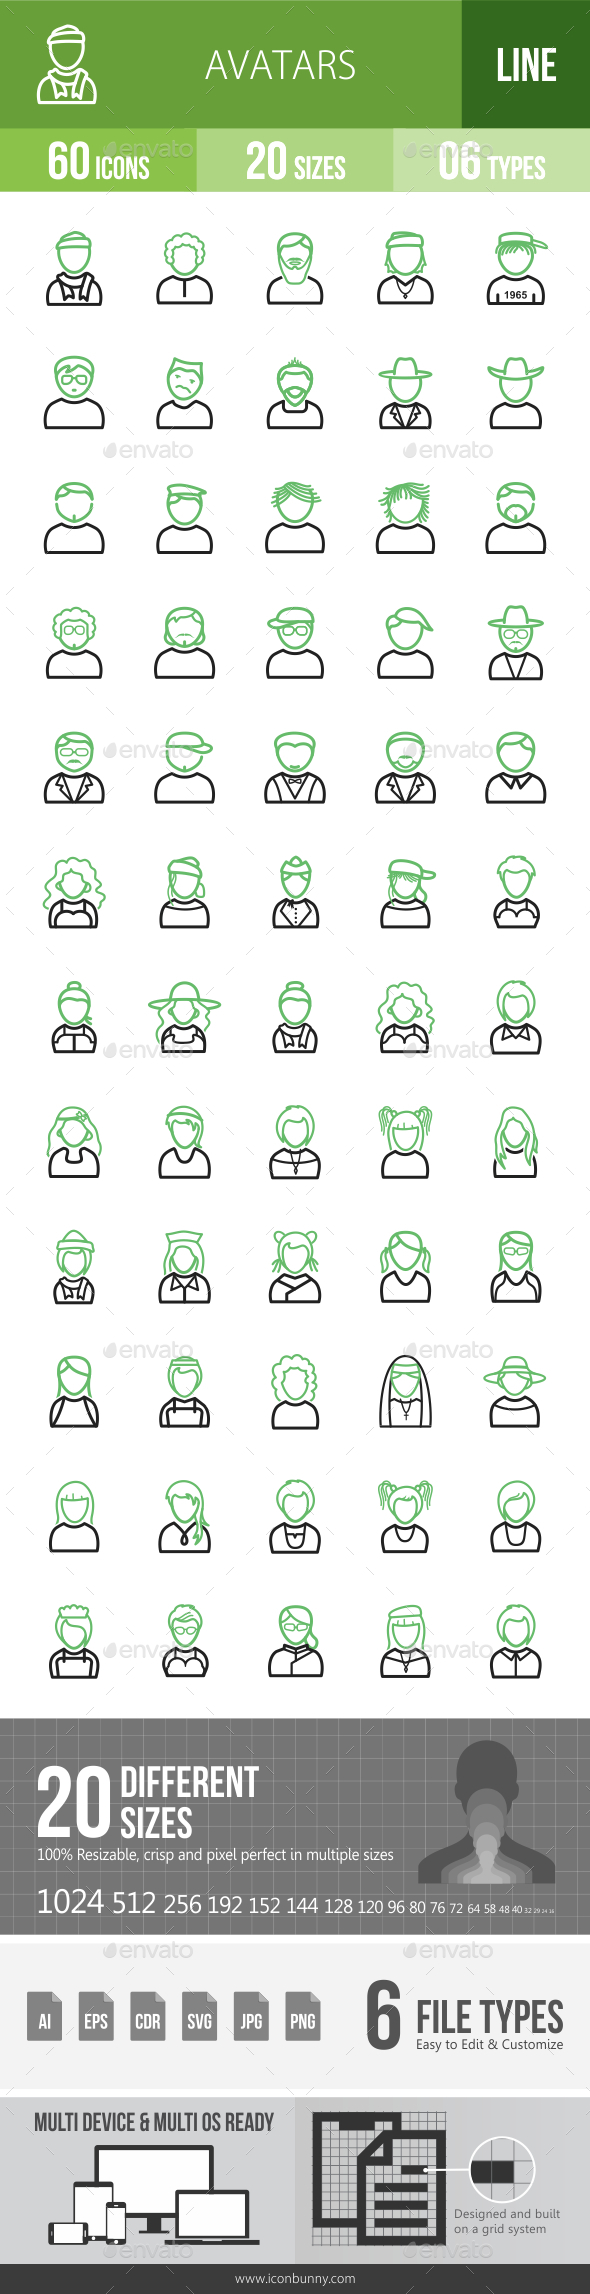 Avatars Line Green & Black Icons - Icons